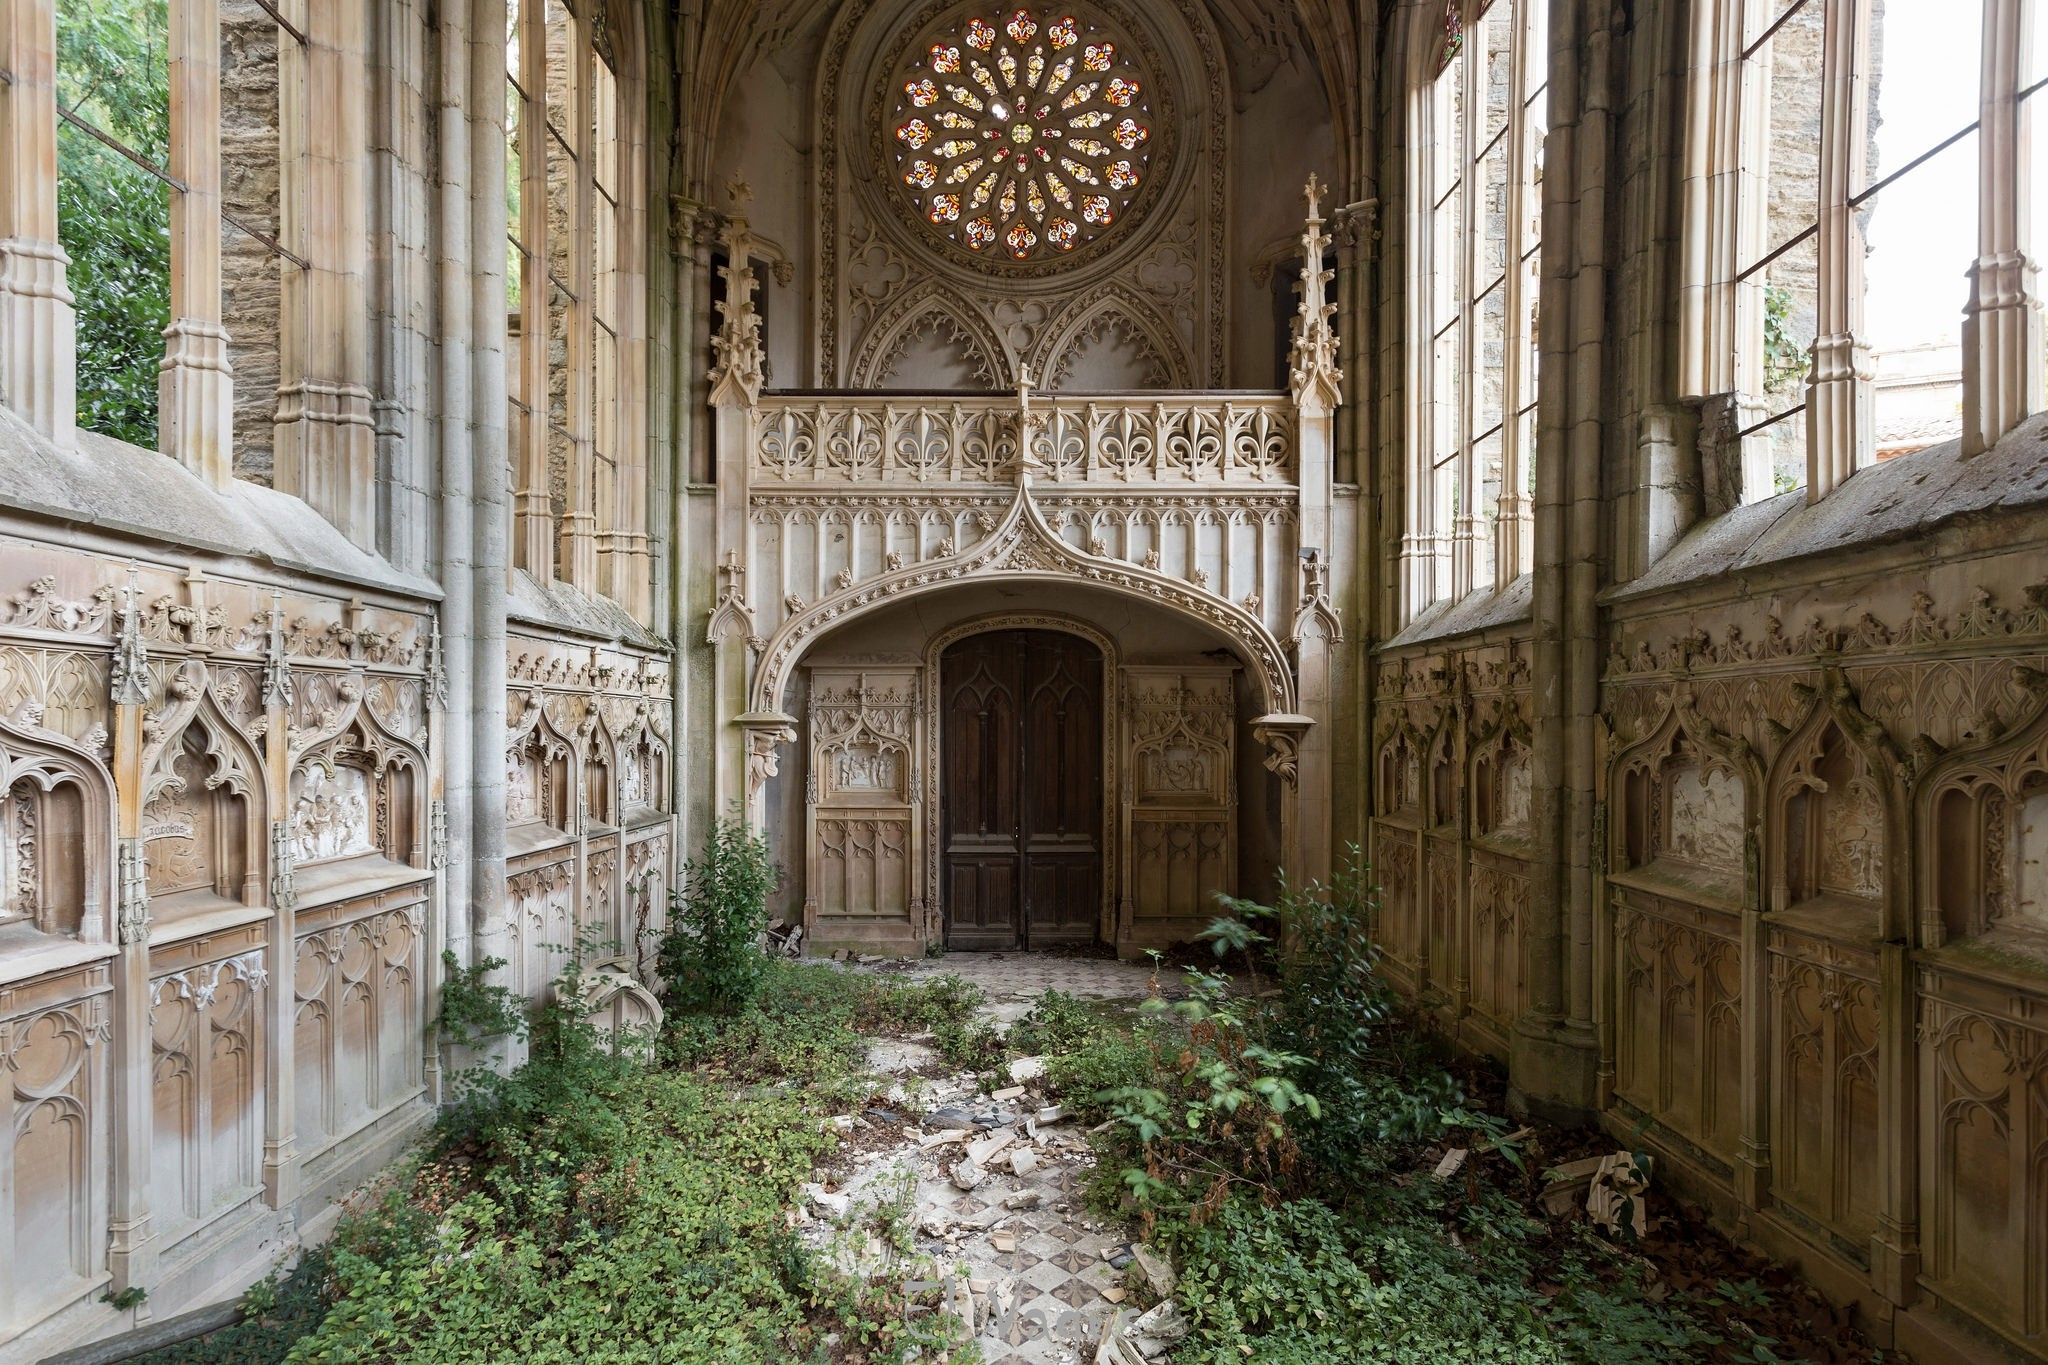 General 2048x1365 church France architecture gothic architecture abandoned